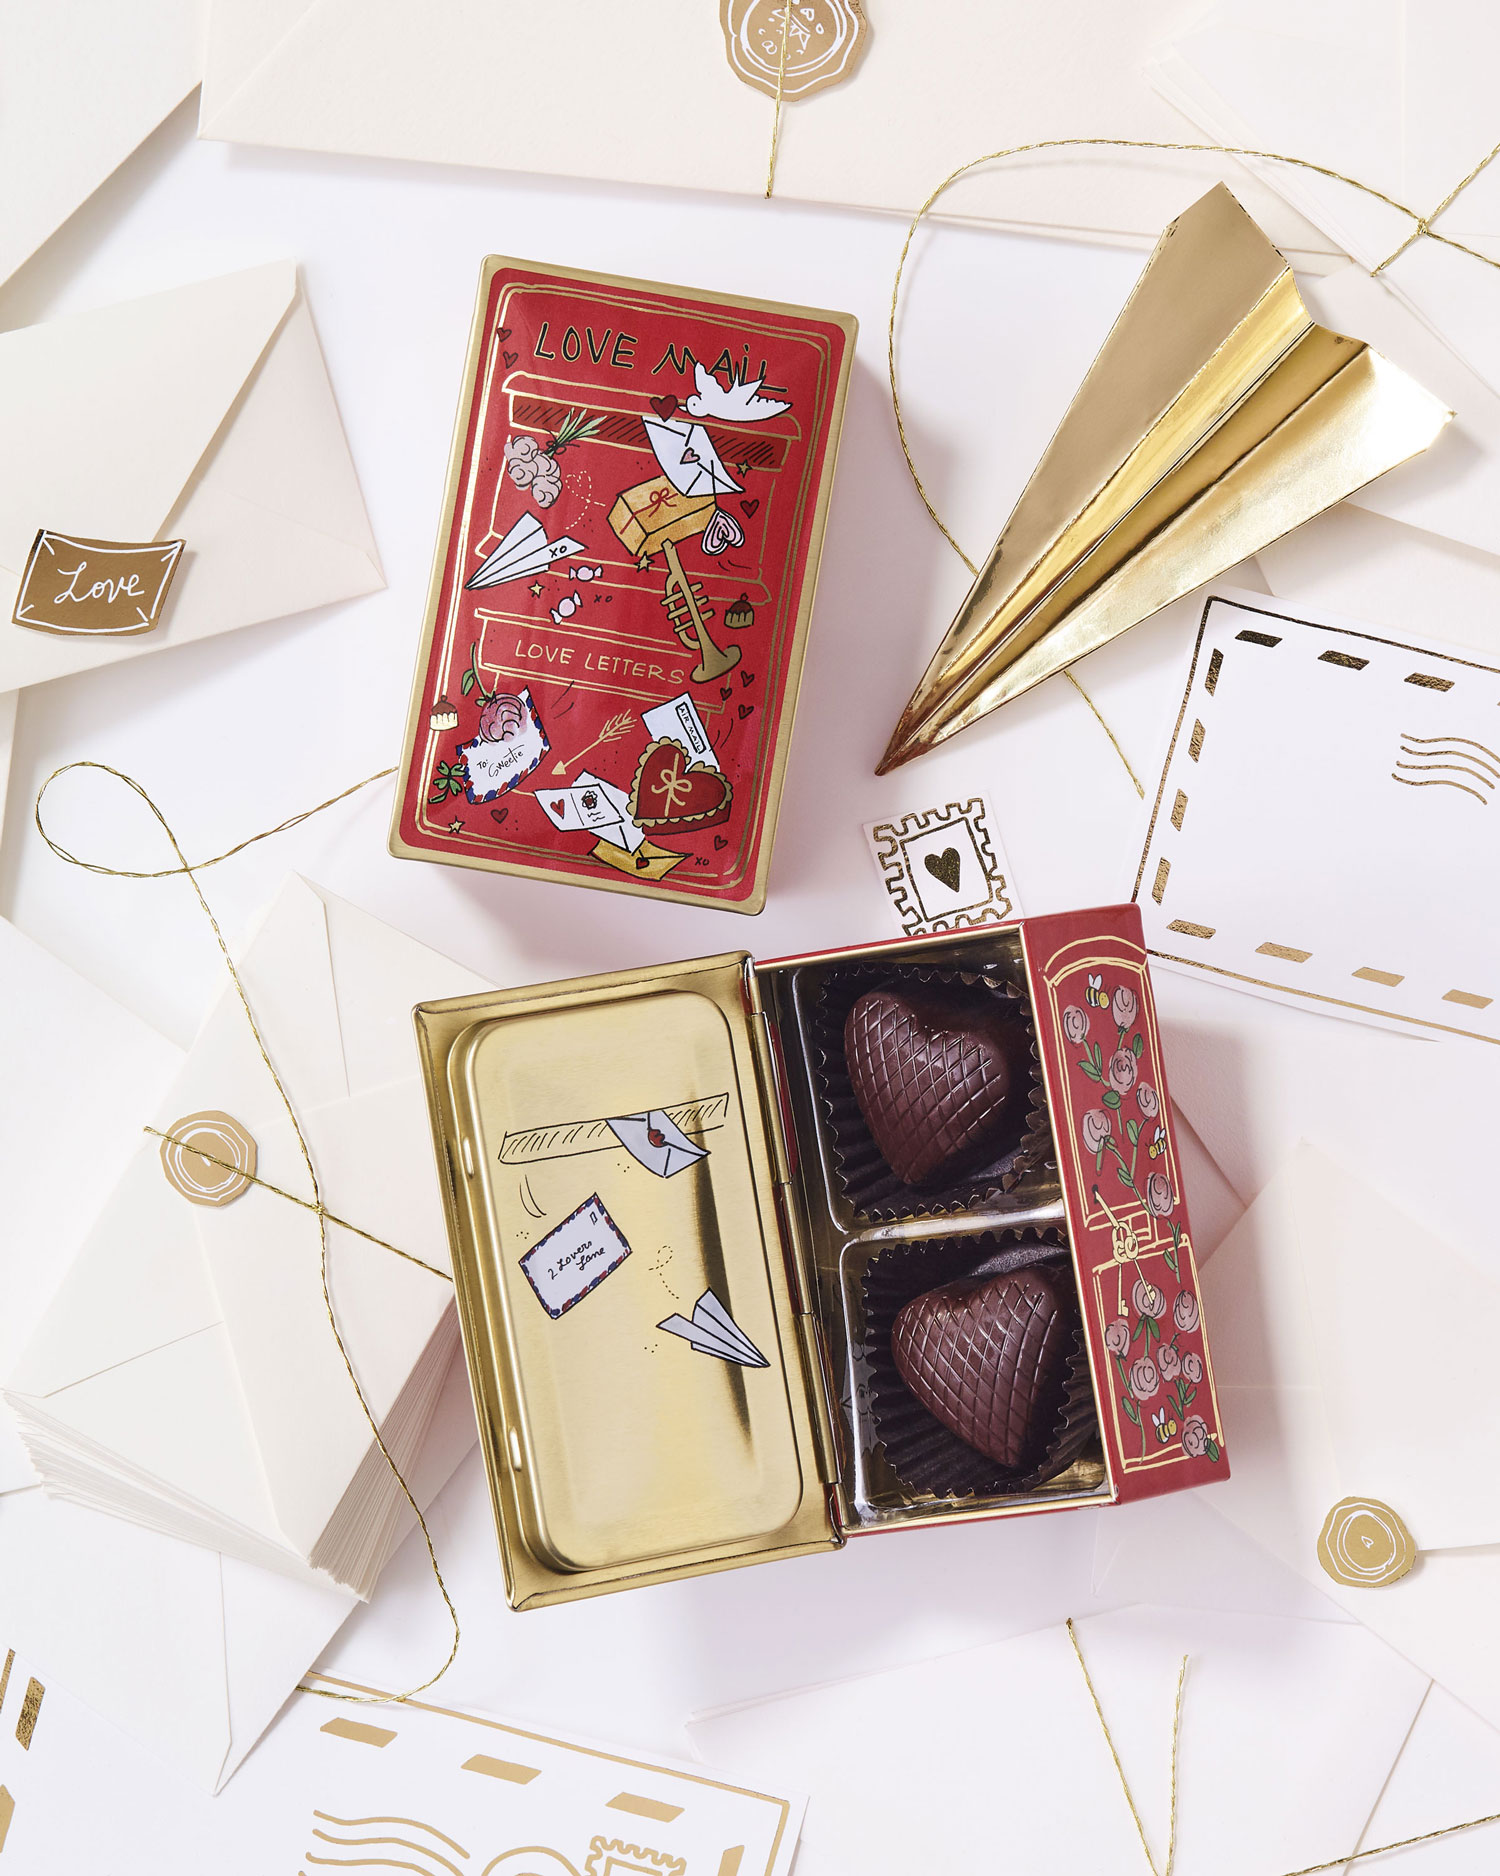 darcy miller louis sherry special delivery celebrate love two piece chocolate tin valentine's day gift ideas